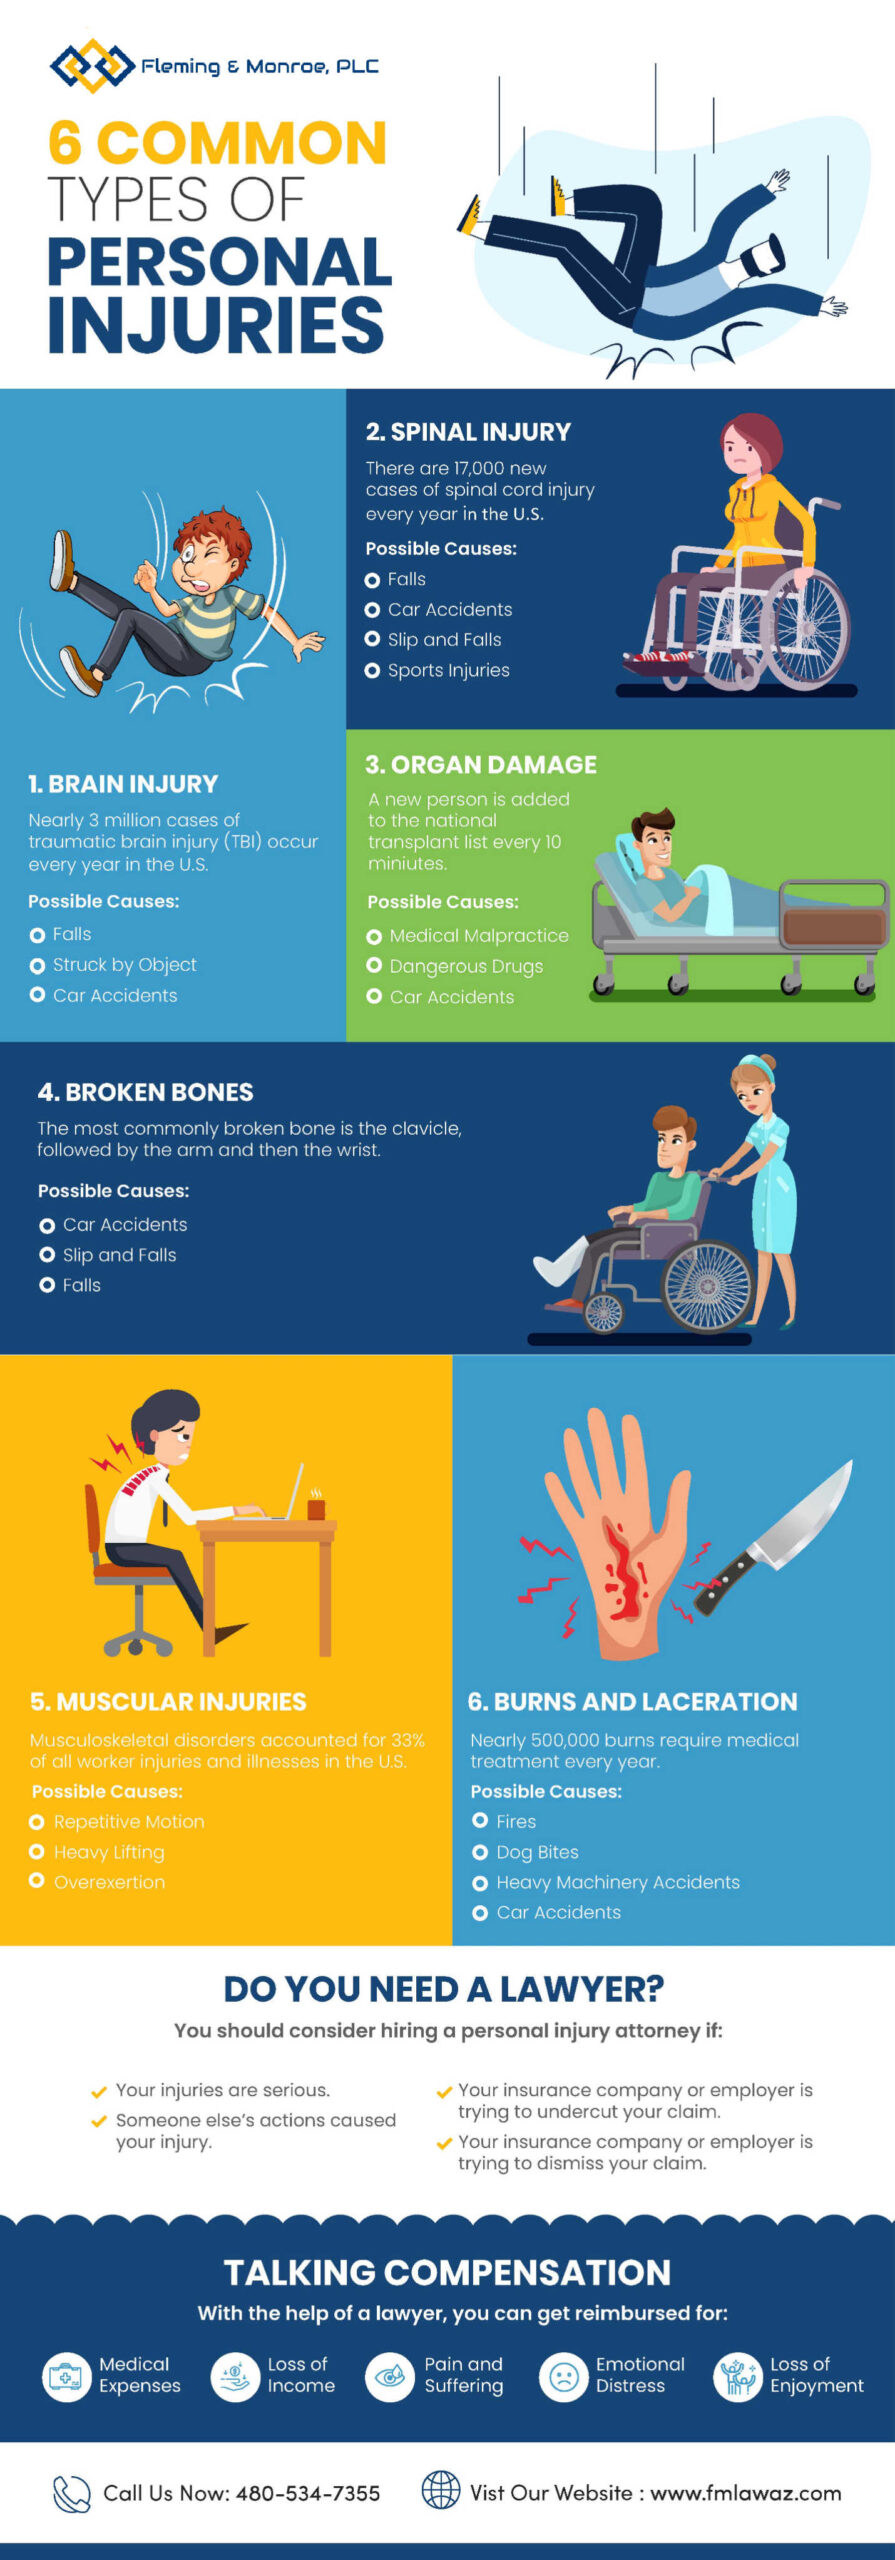 what are the common types of personal injuries